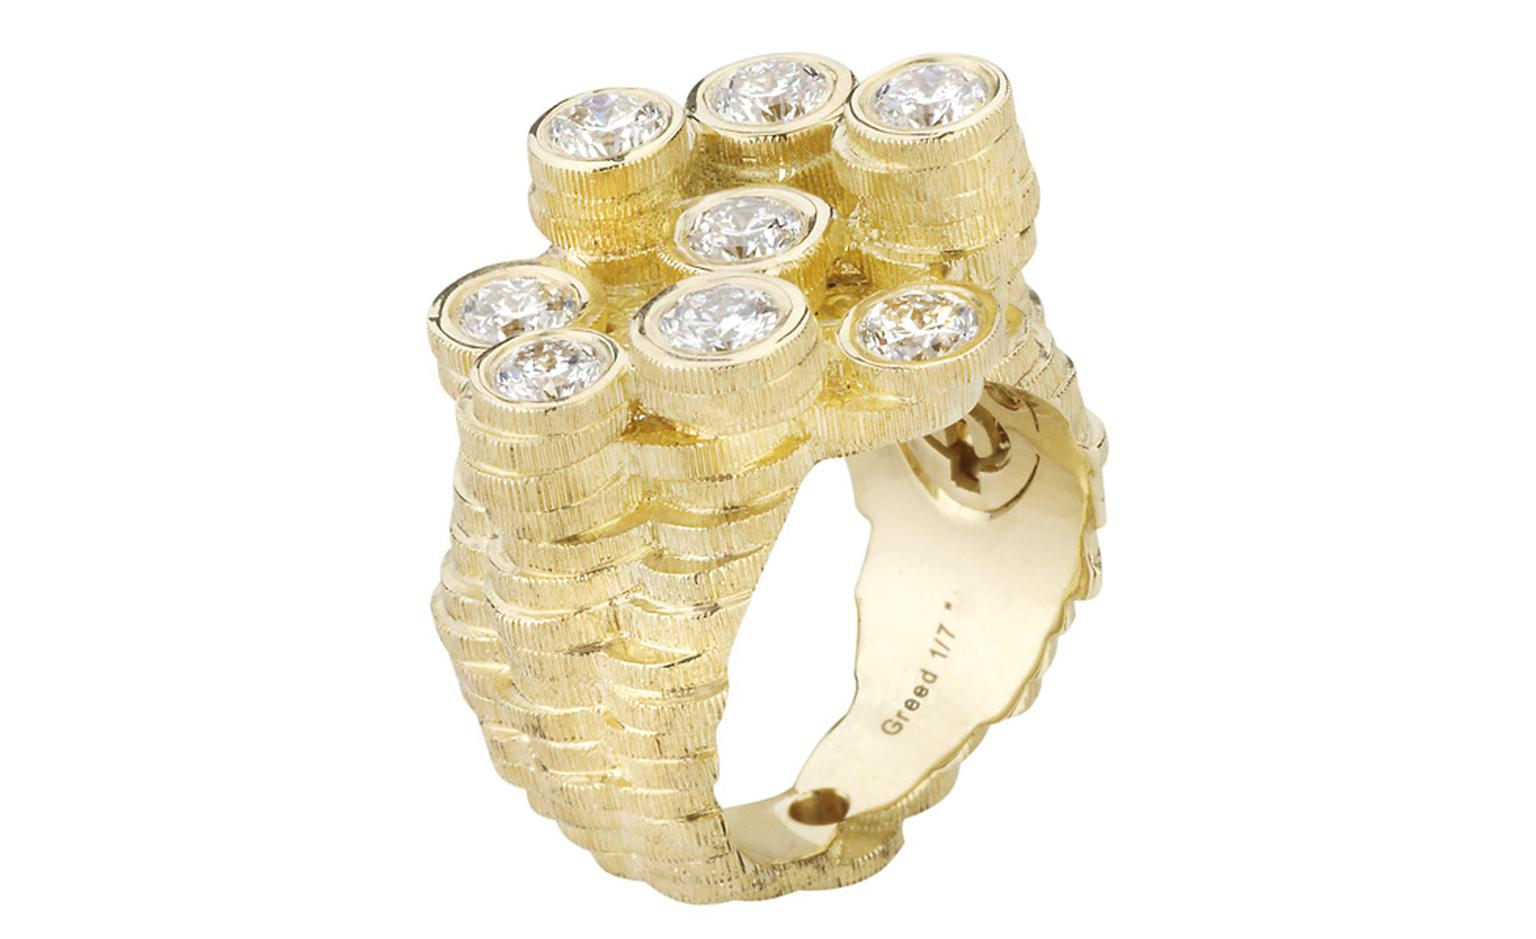 Stephen Webster Seven Deadly Sins Greed ring - I love the stacks of little coins